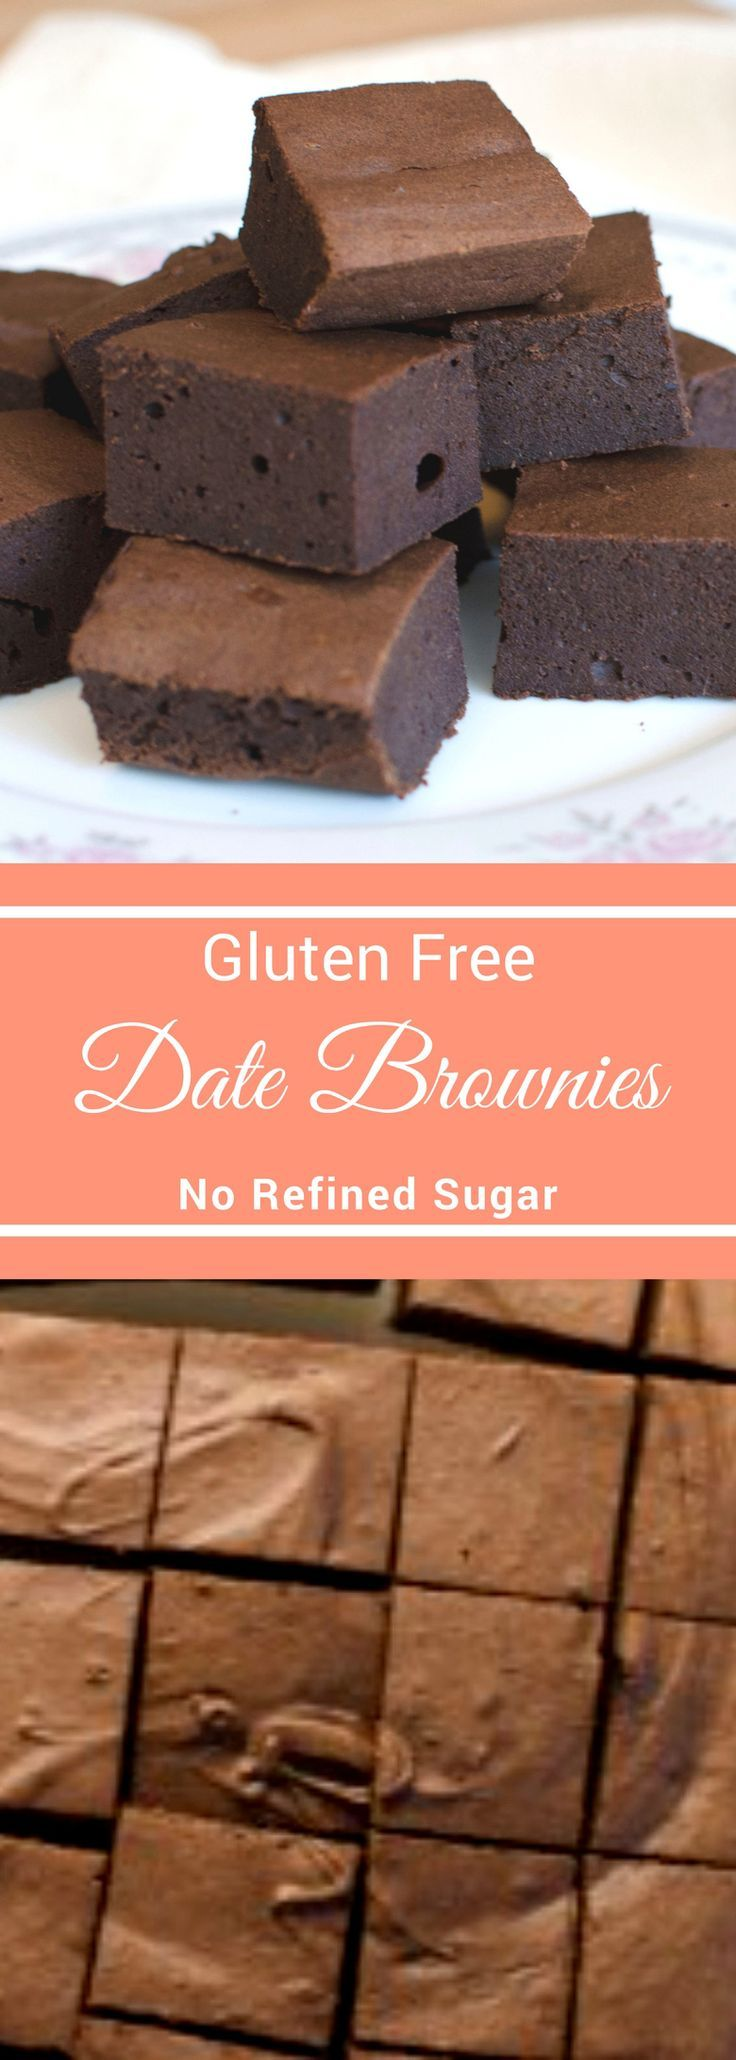 These Date Brownies has no refined sugar, they're sweetened only with dates!  Added pureed dates to this gluten free brownie batters makes a naturally sweet brownie!